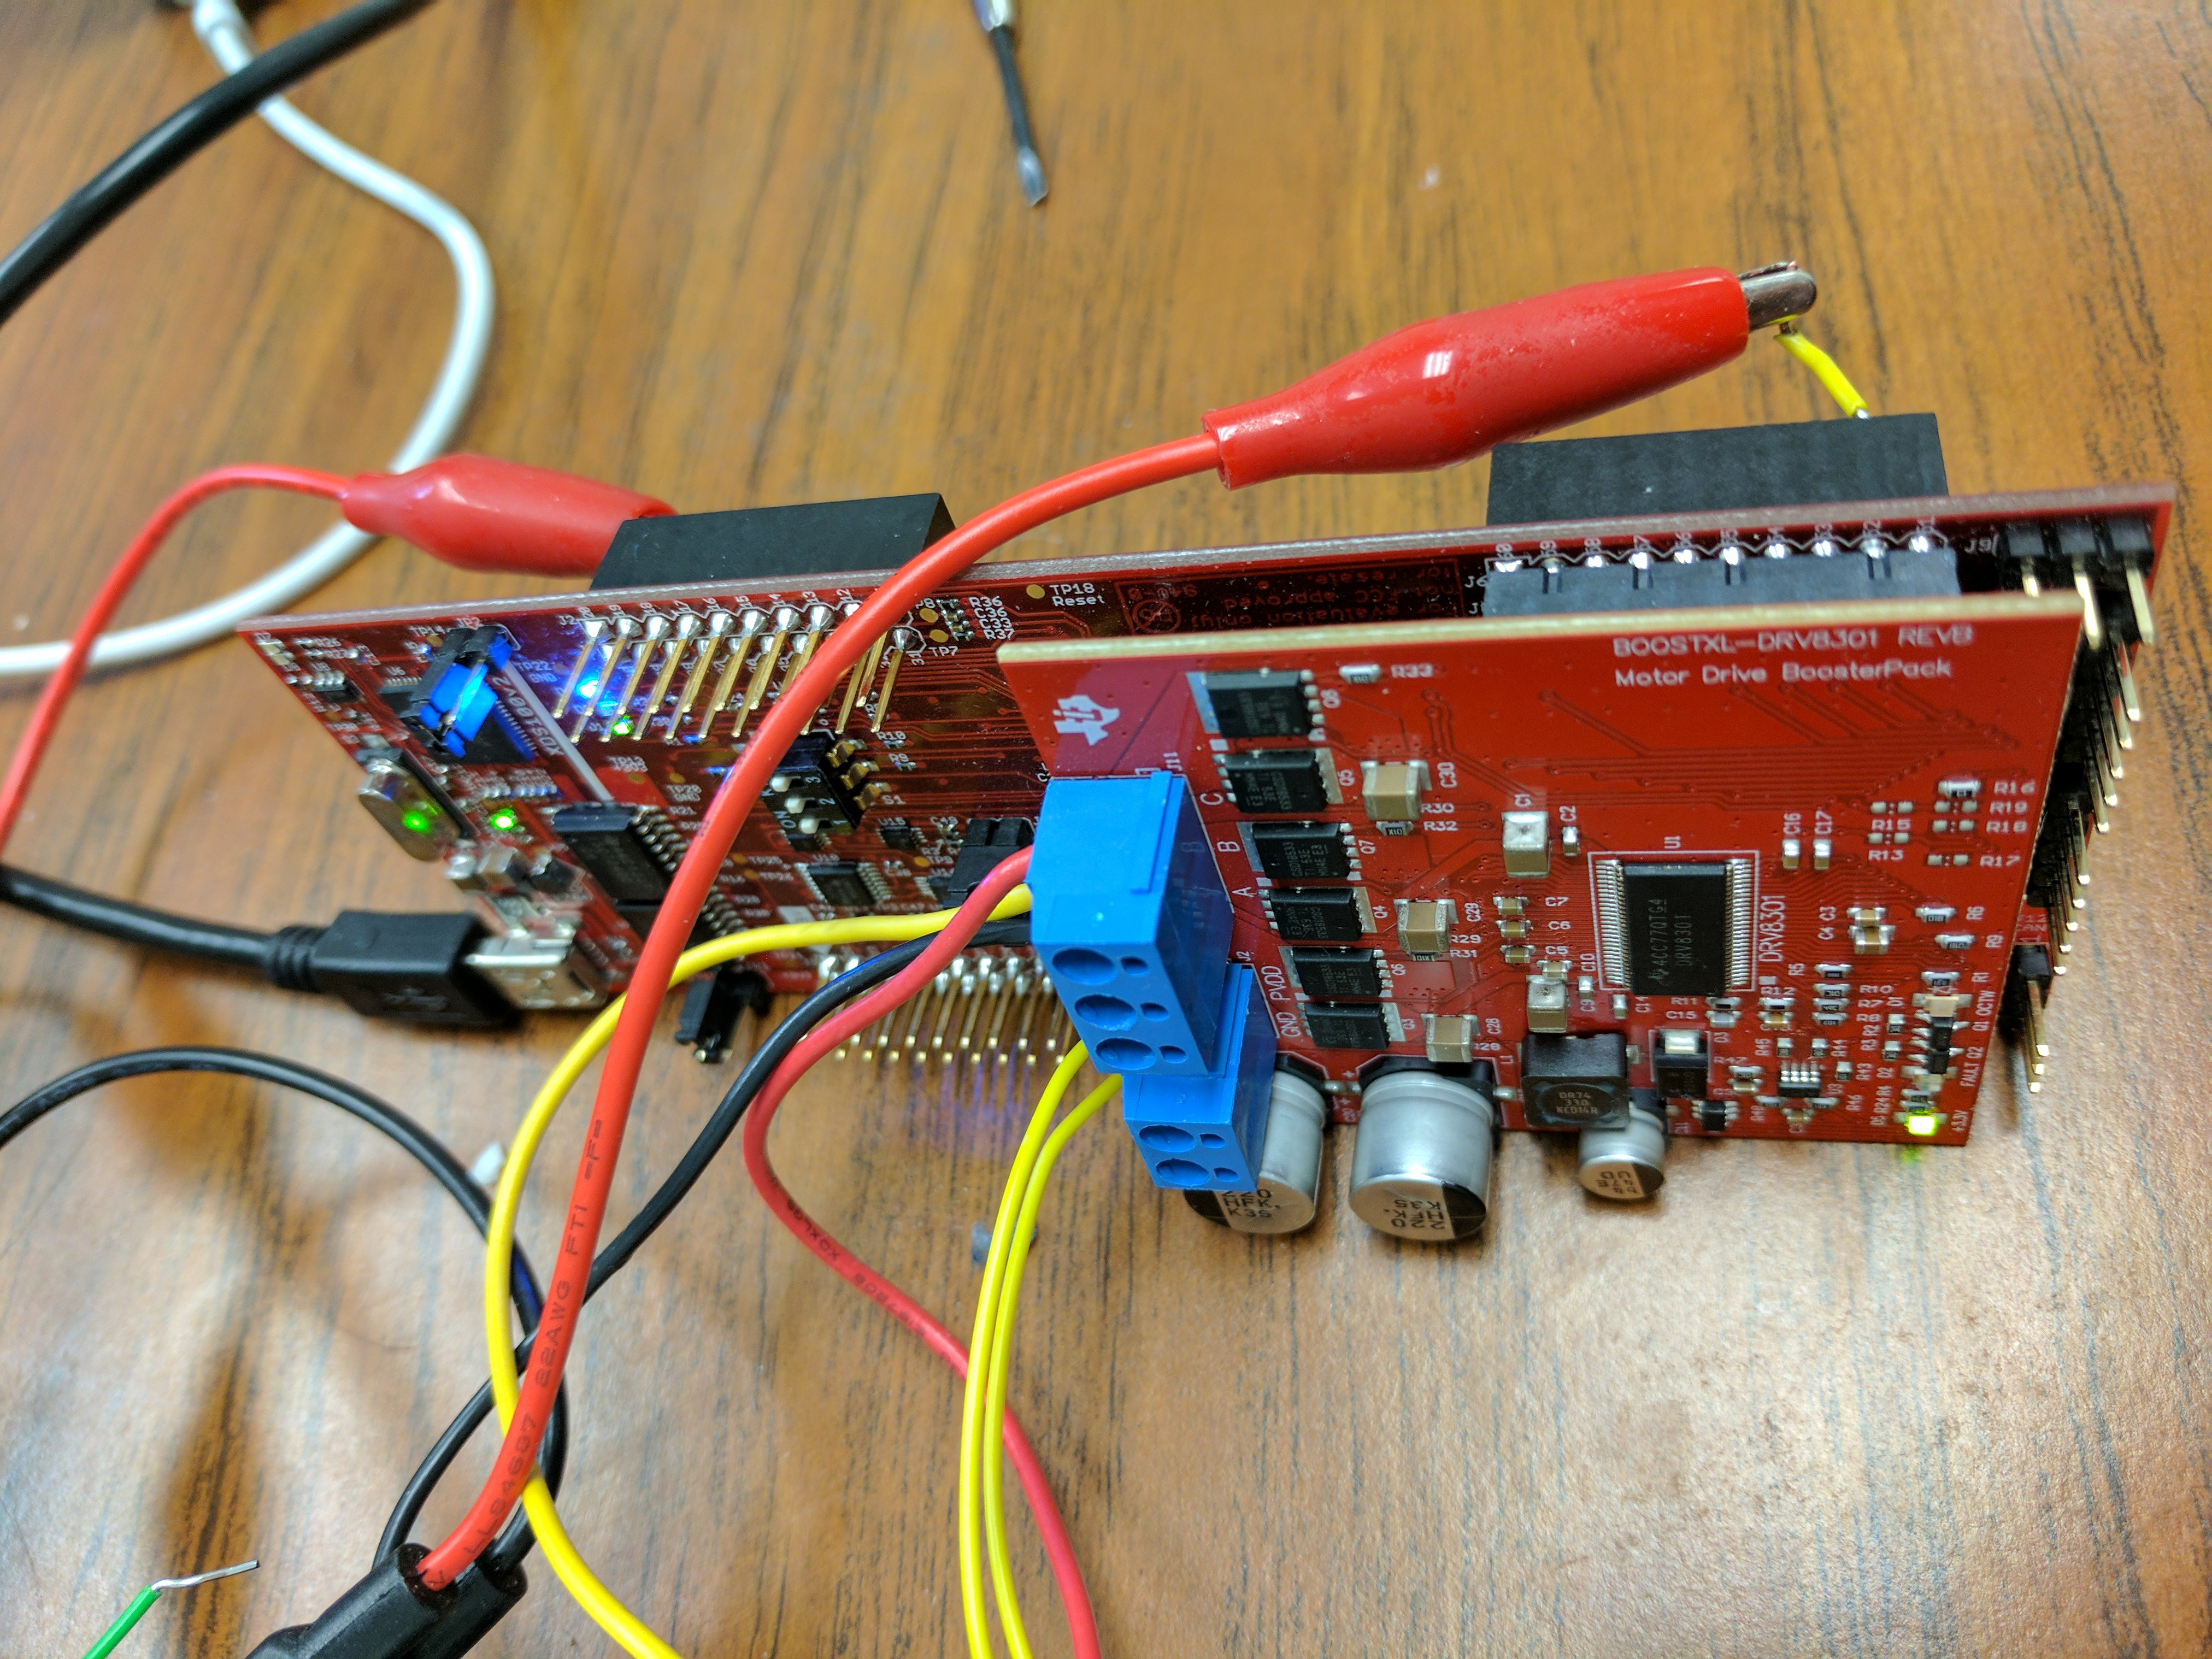 Ccs Launchxl F28069m Interfacing With Boostxl Drv8301 Using Pwm Electronics Forum Circuits Projects And Microcontrollers I Am Working Through Instaspin Labs Users Guide V1016 Lab1a Blinking Leds Is But Stuck On 1b Where A Motor Suppose